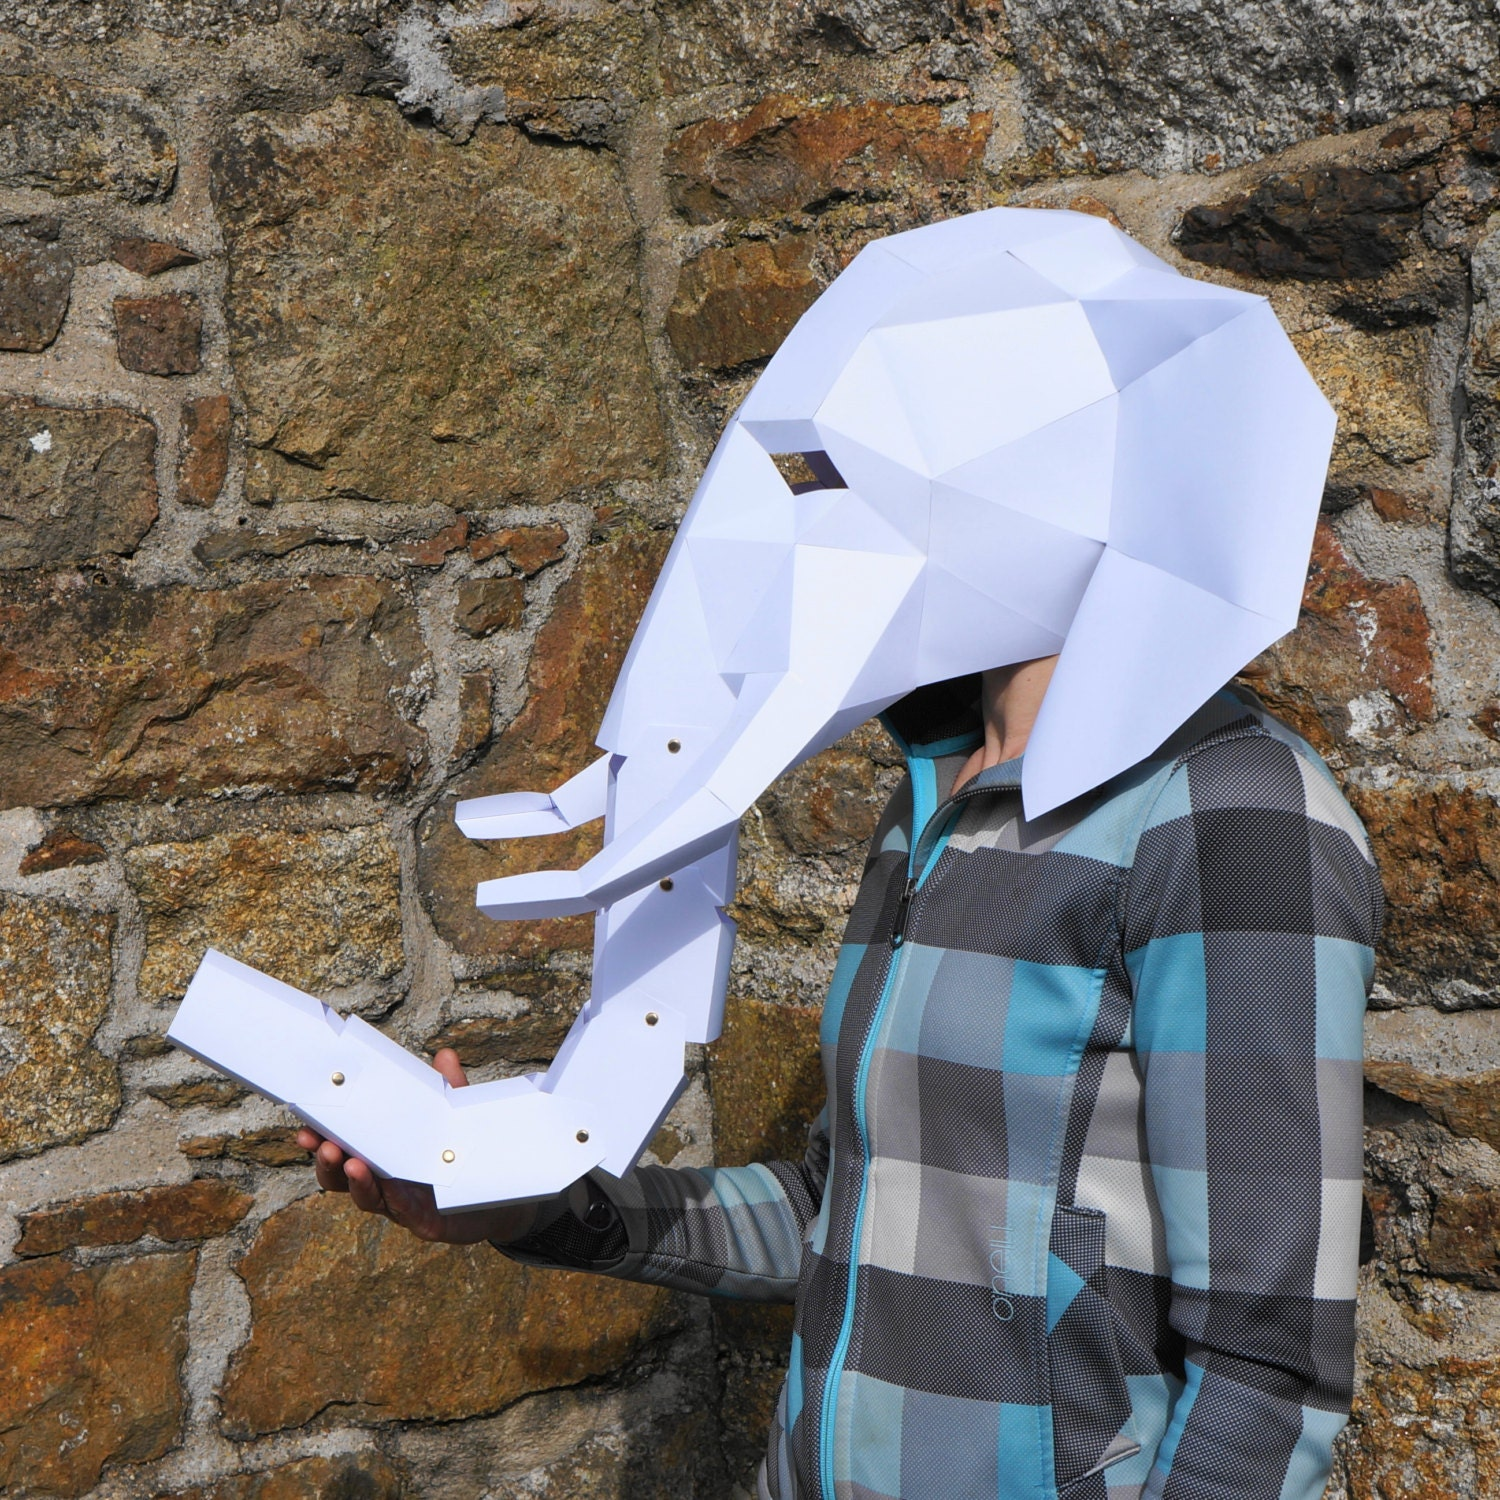 Elephant Mask make your own 3D Low-Poly Mask with PDF